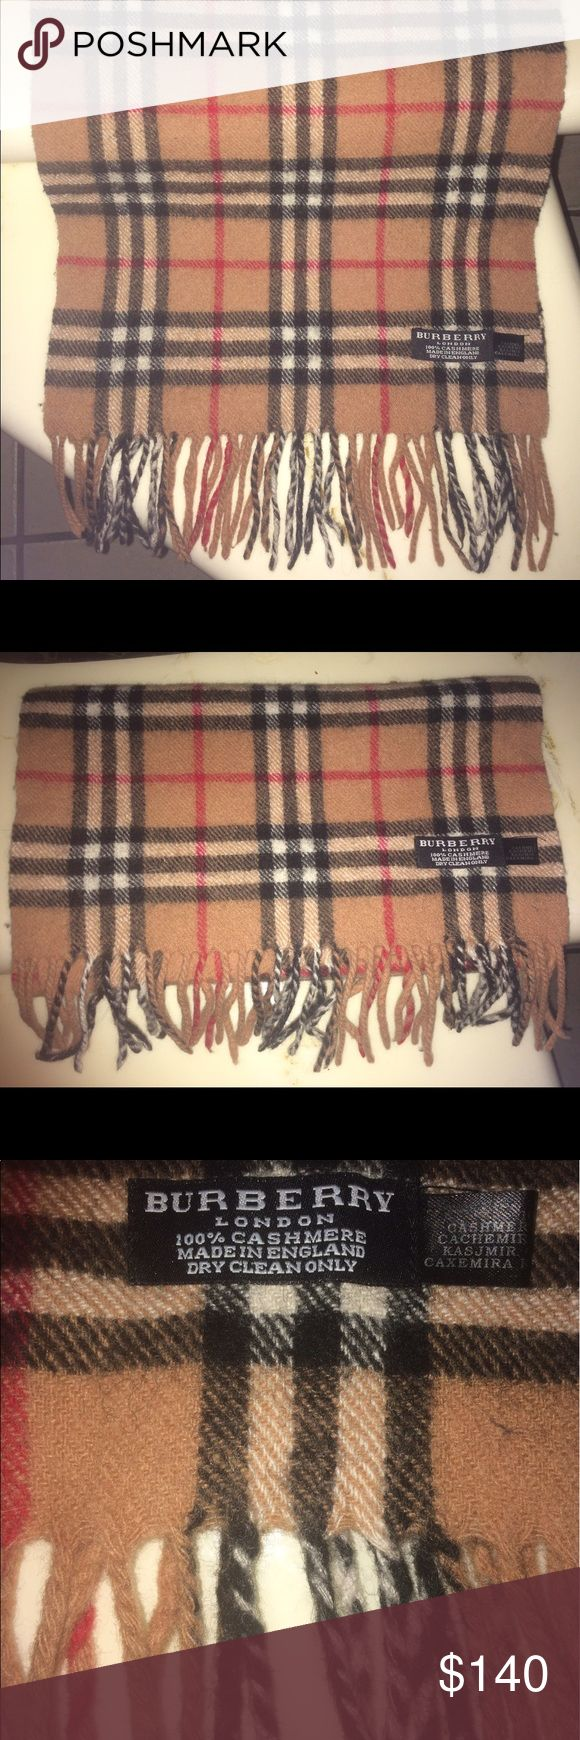 Authentic Burberry Plaid Tan Nova Check Scarf Authentic Burberry London Plaid Tan Nova Check Scarf in like new condition. No damage or signs of wear. It is a stylish and iconic scarf. It is 60 inches long & 24 inches wide. Made in England. 100% Cashmere. Burberry Accessories Scarves & Wraps